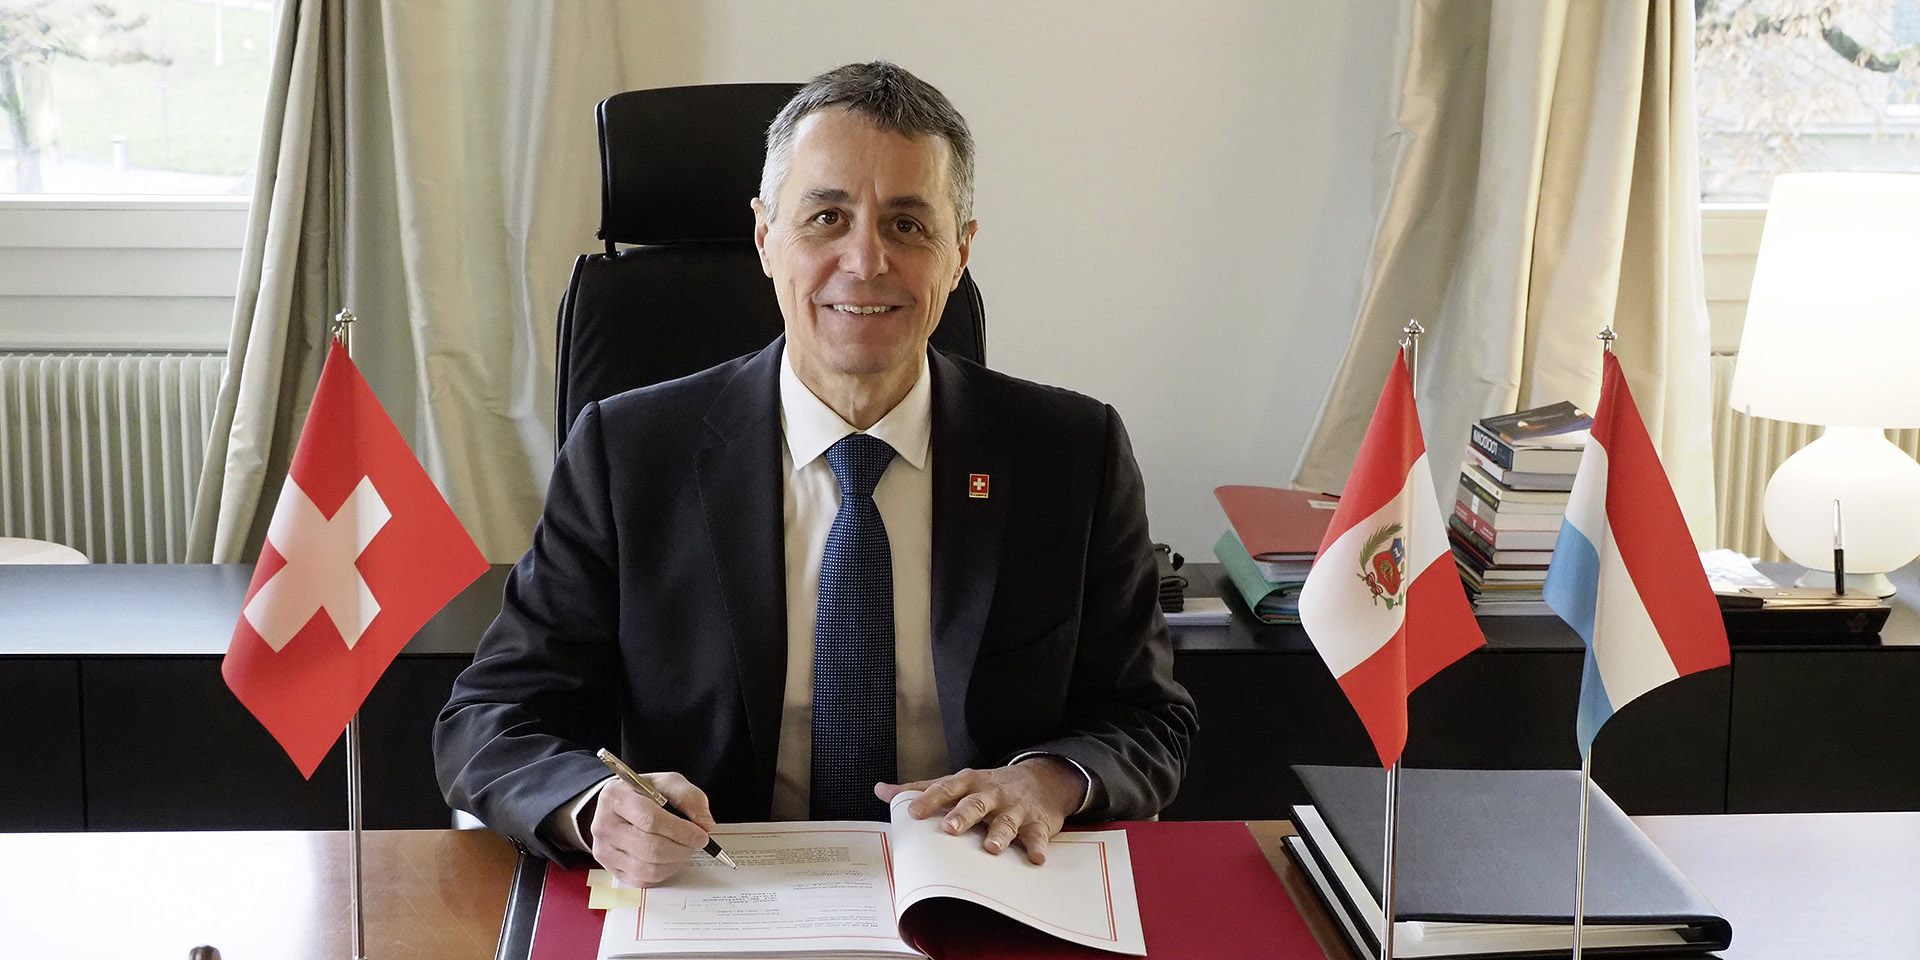 Federal Councillor Ignazio Cassis signs a document. On his desk appear the flags of Switzerland (on his right), Peru and Luxembourg (on his left).